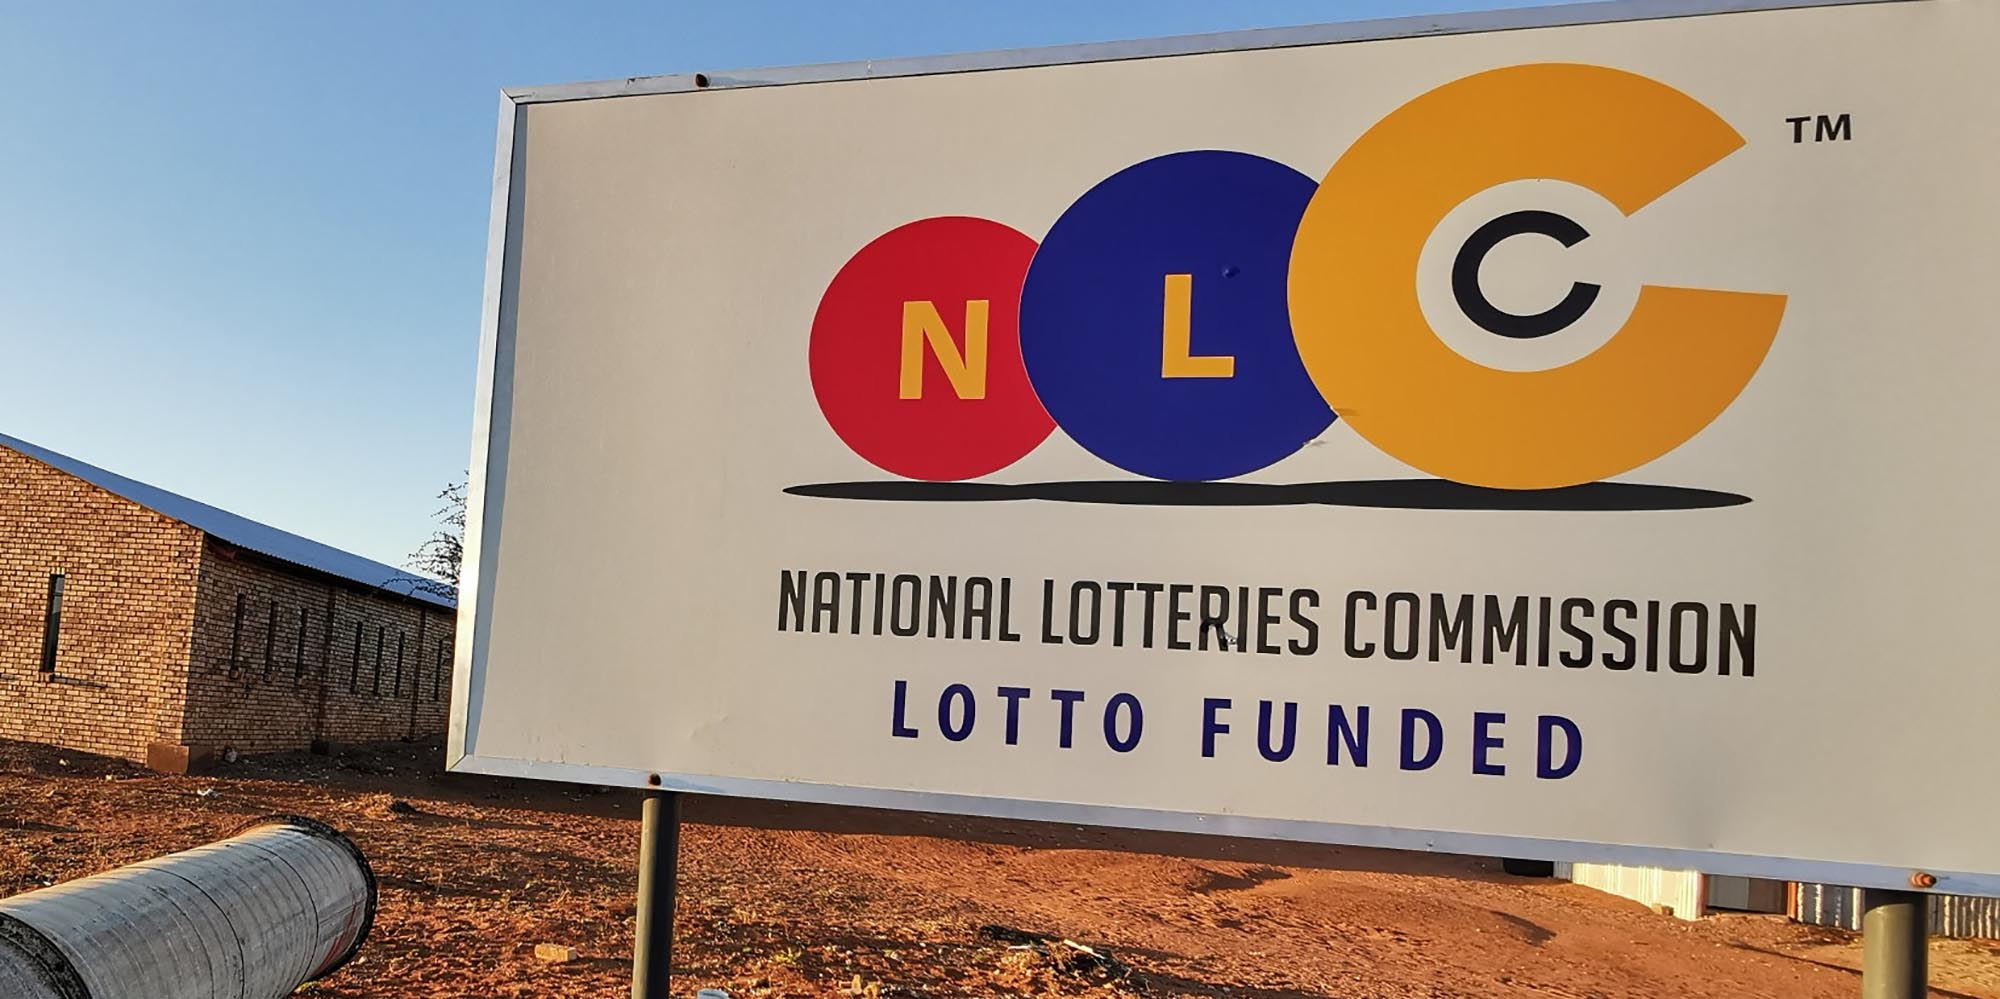 Lottery was warned in 2014 about fraud � and yet it continued - Daily Maverick